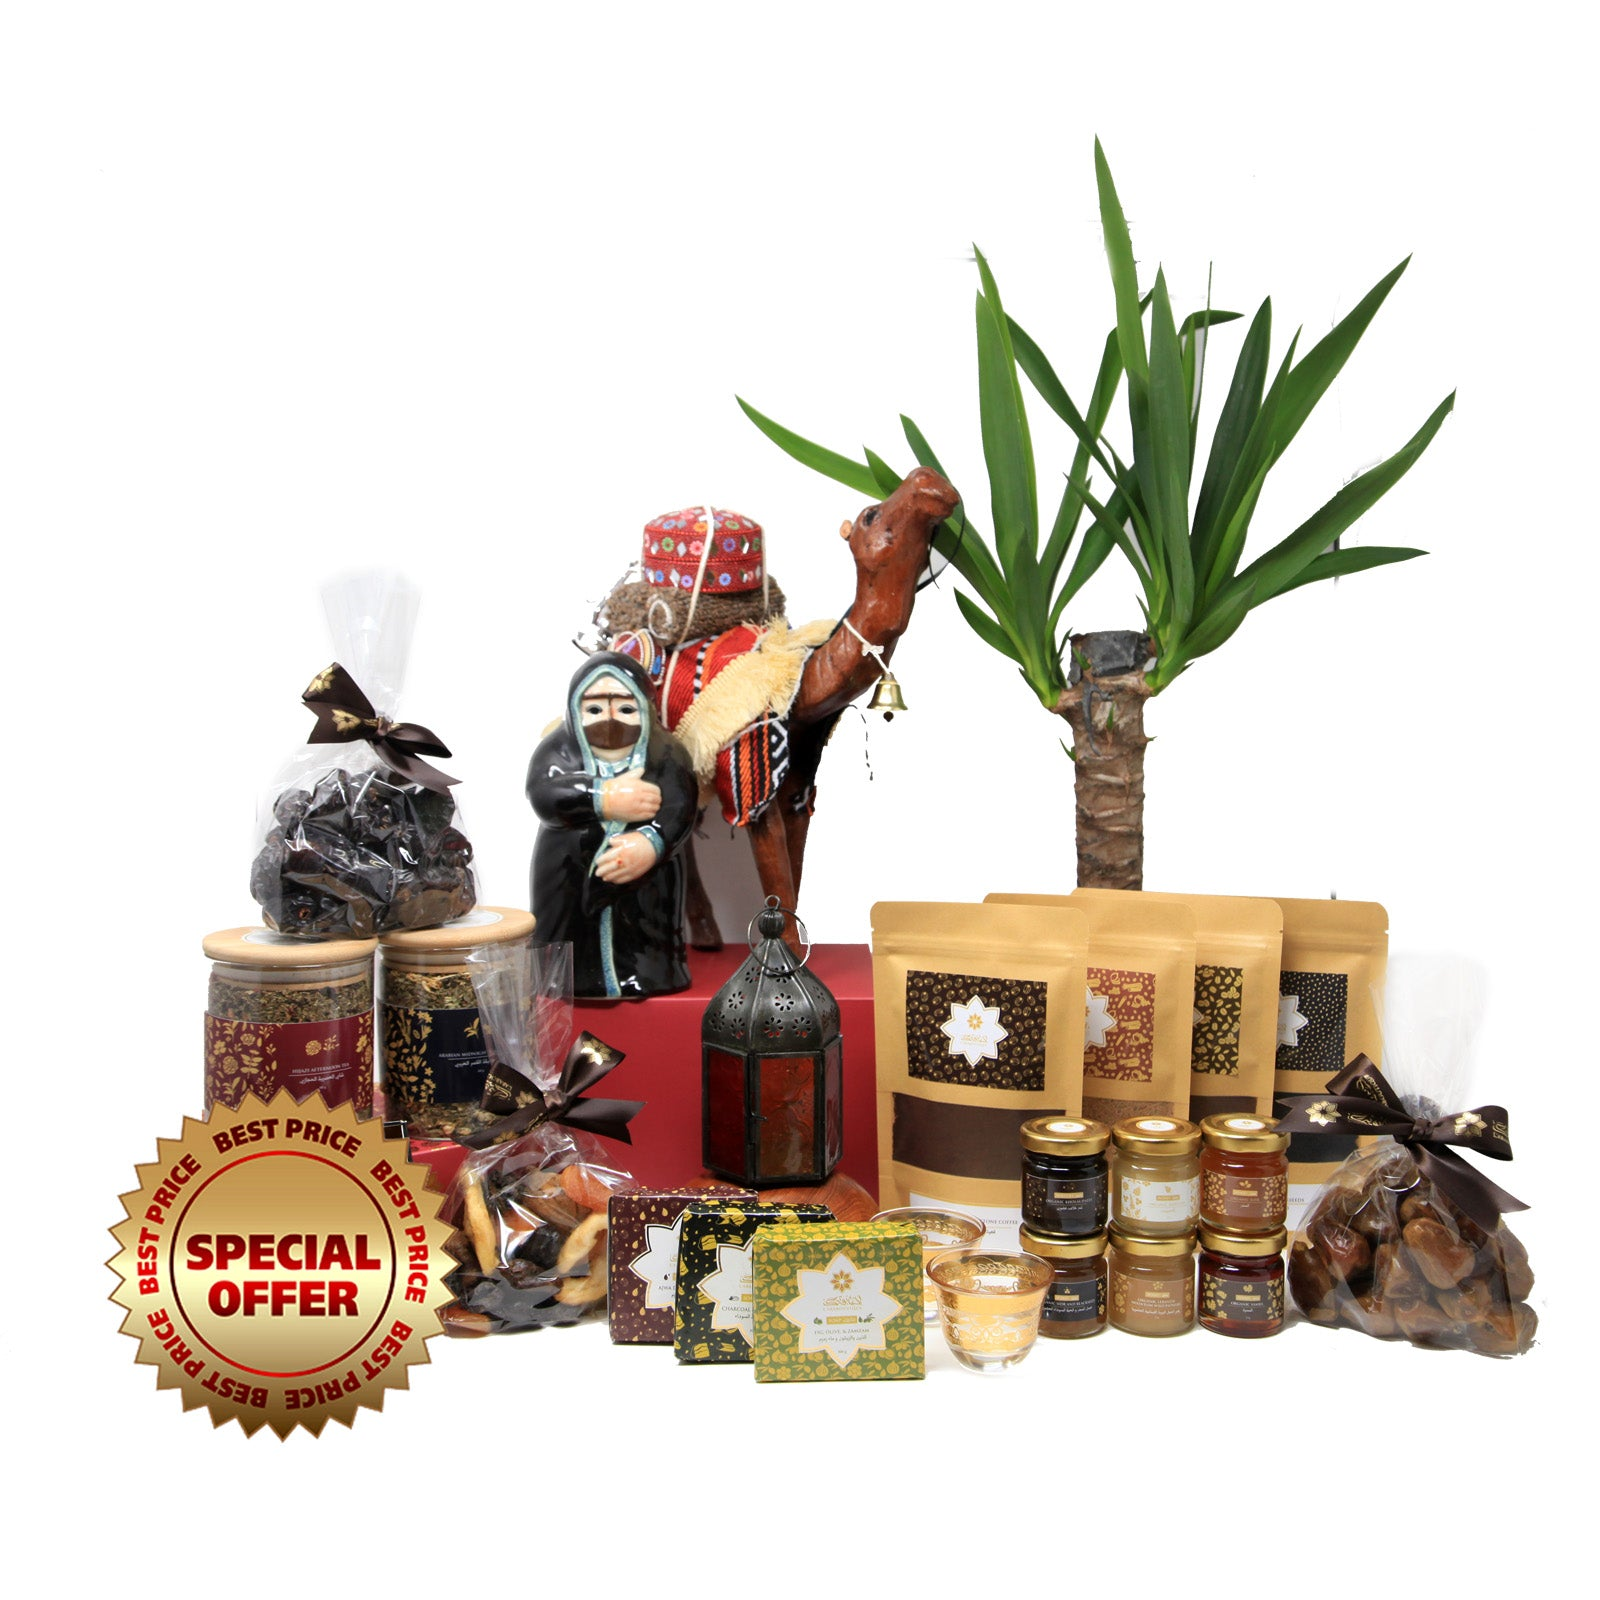 The Deluxe Arabian Ramadan Hamper